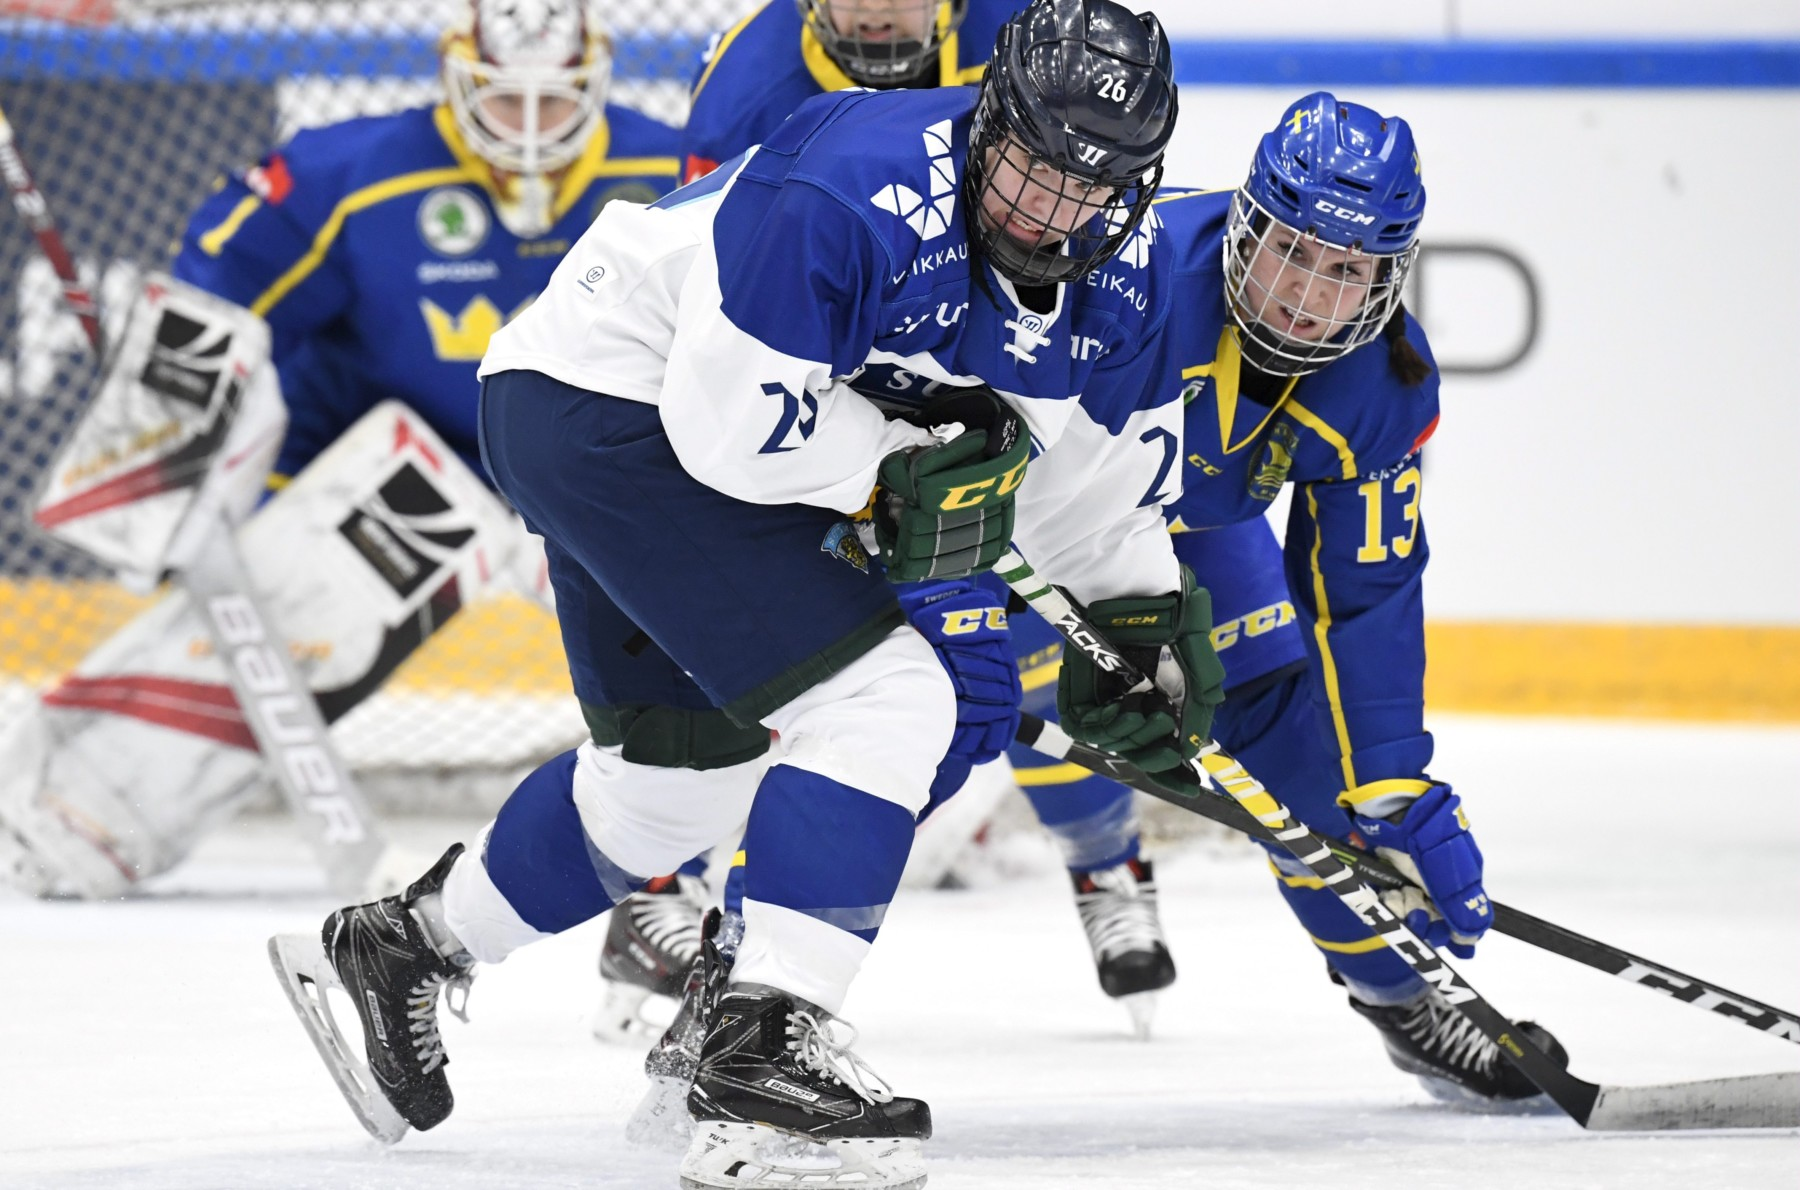 Home Crowd Cheers As Finland Hosts World Hockey Championship